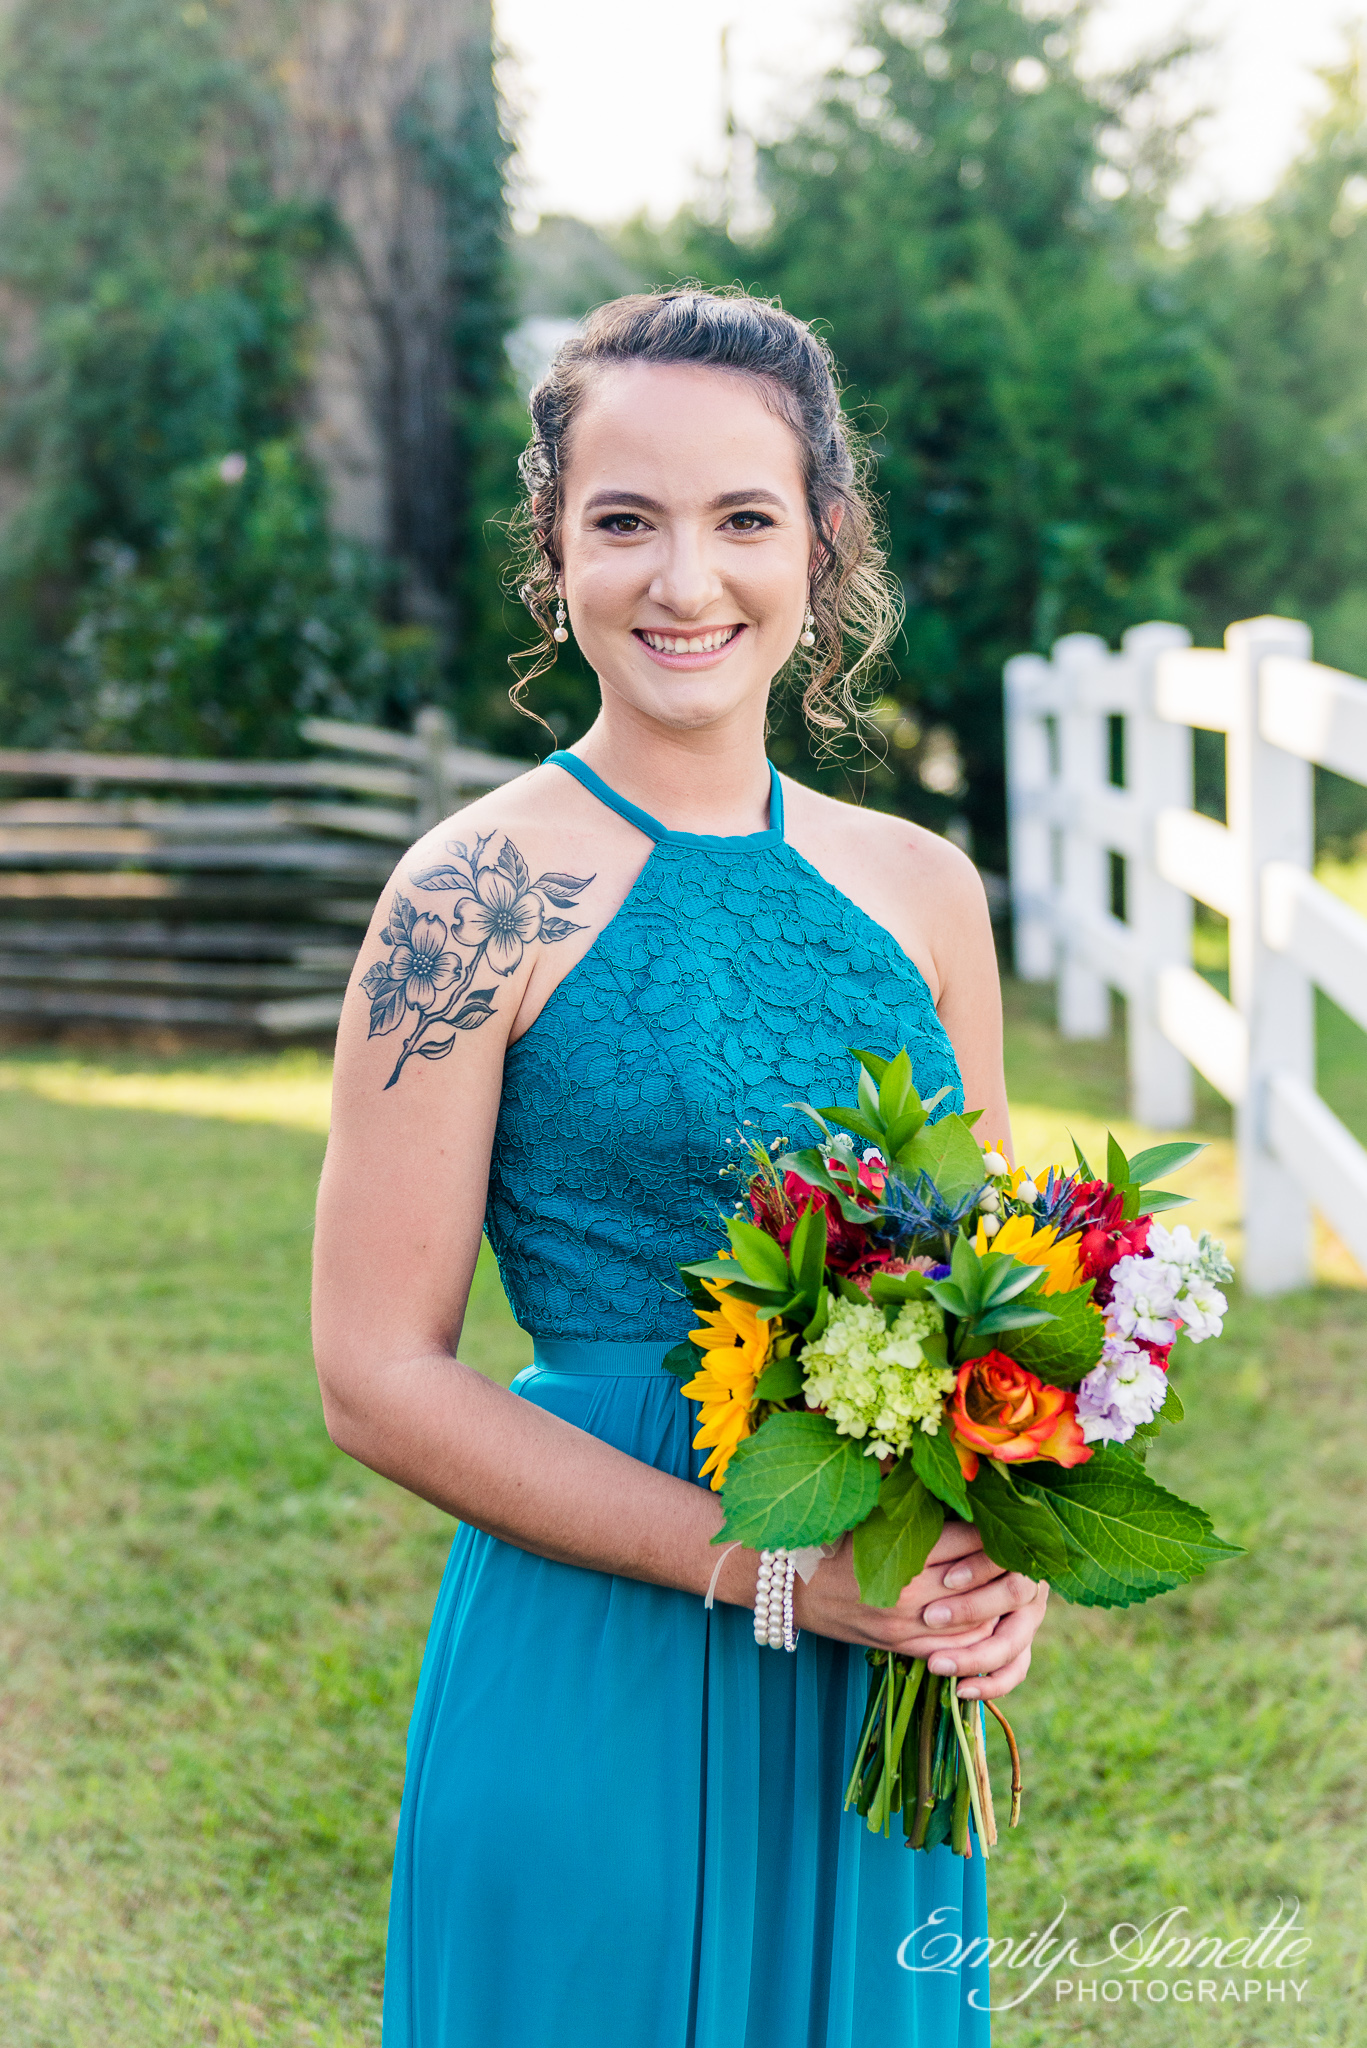 A bridesmaid poses for a portrait in a blue maxi dress holding a colorful bouquet outside a silo during a country wedding at Amber Grove near Richmond, Virginia